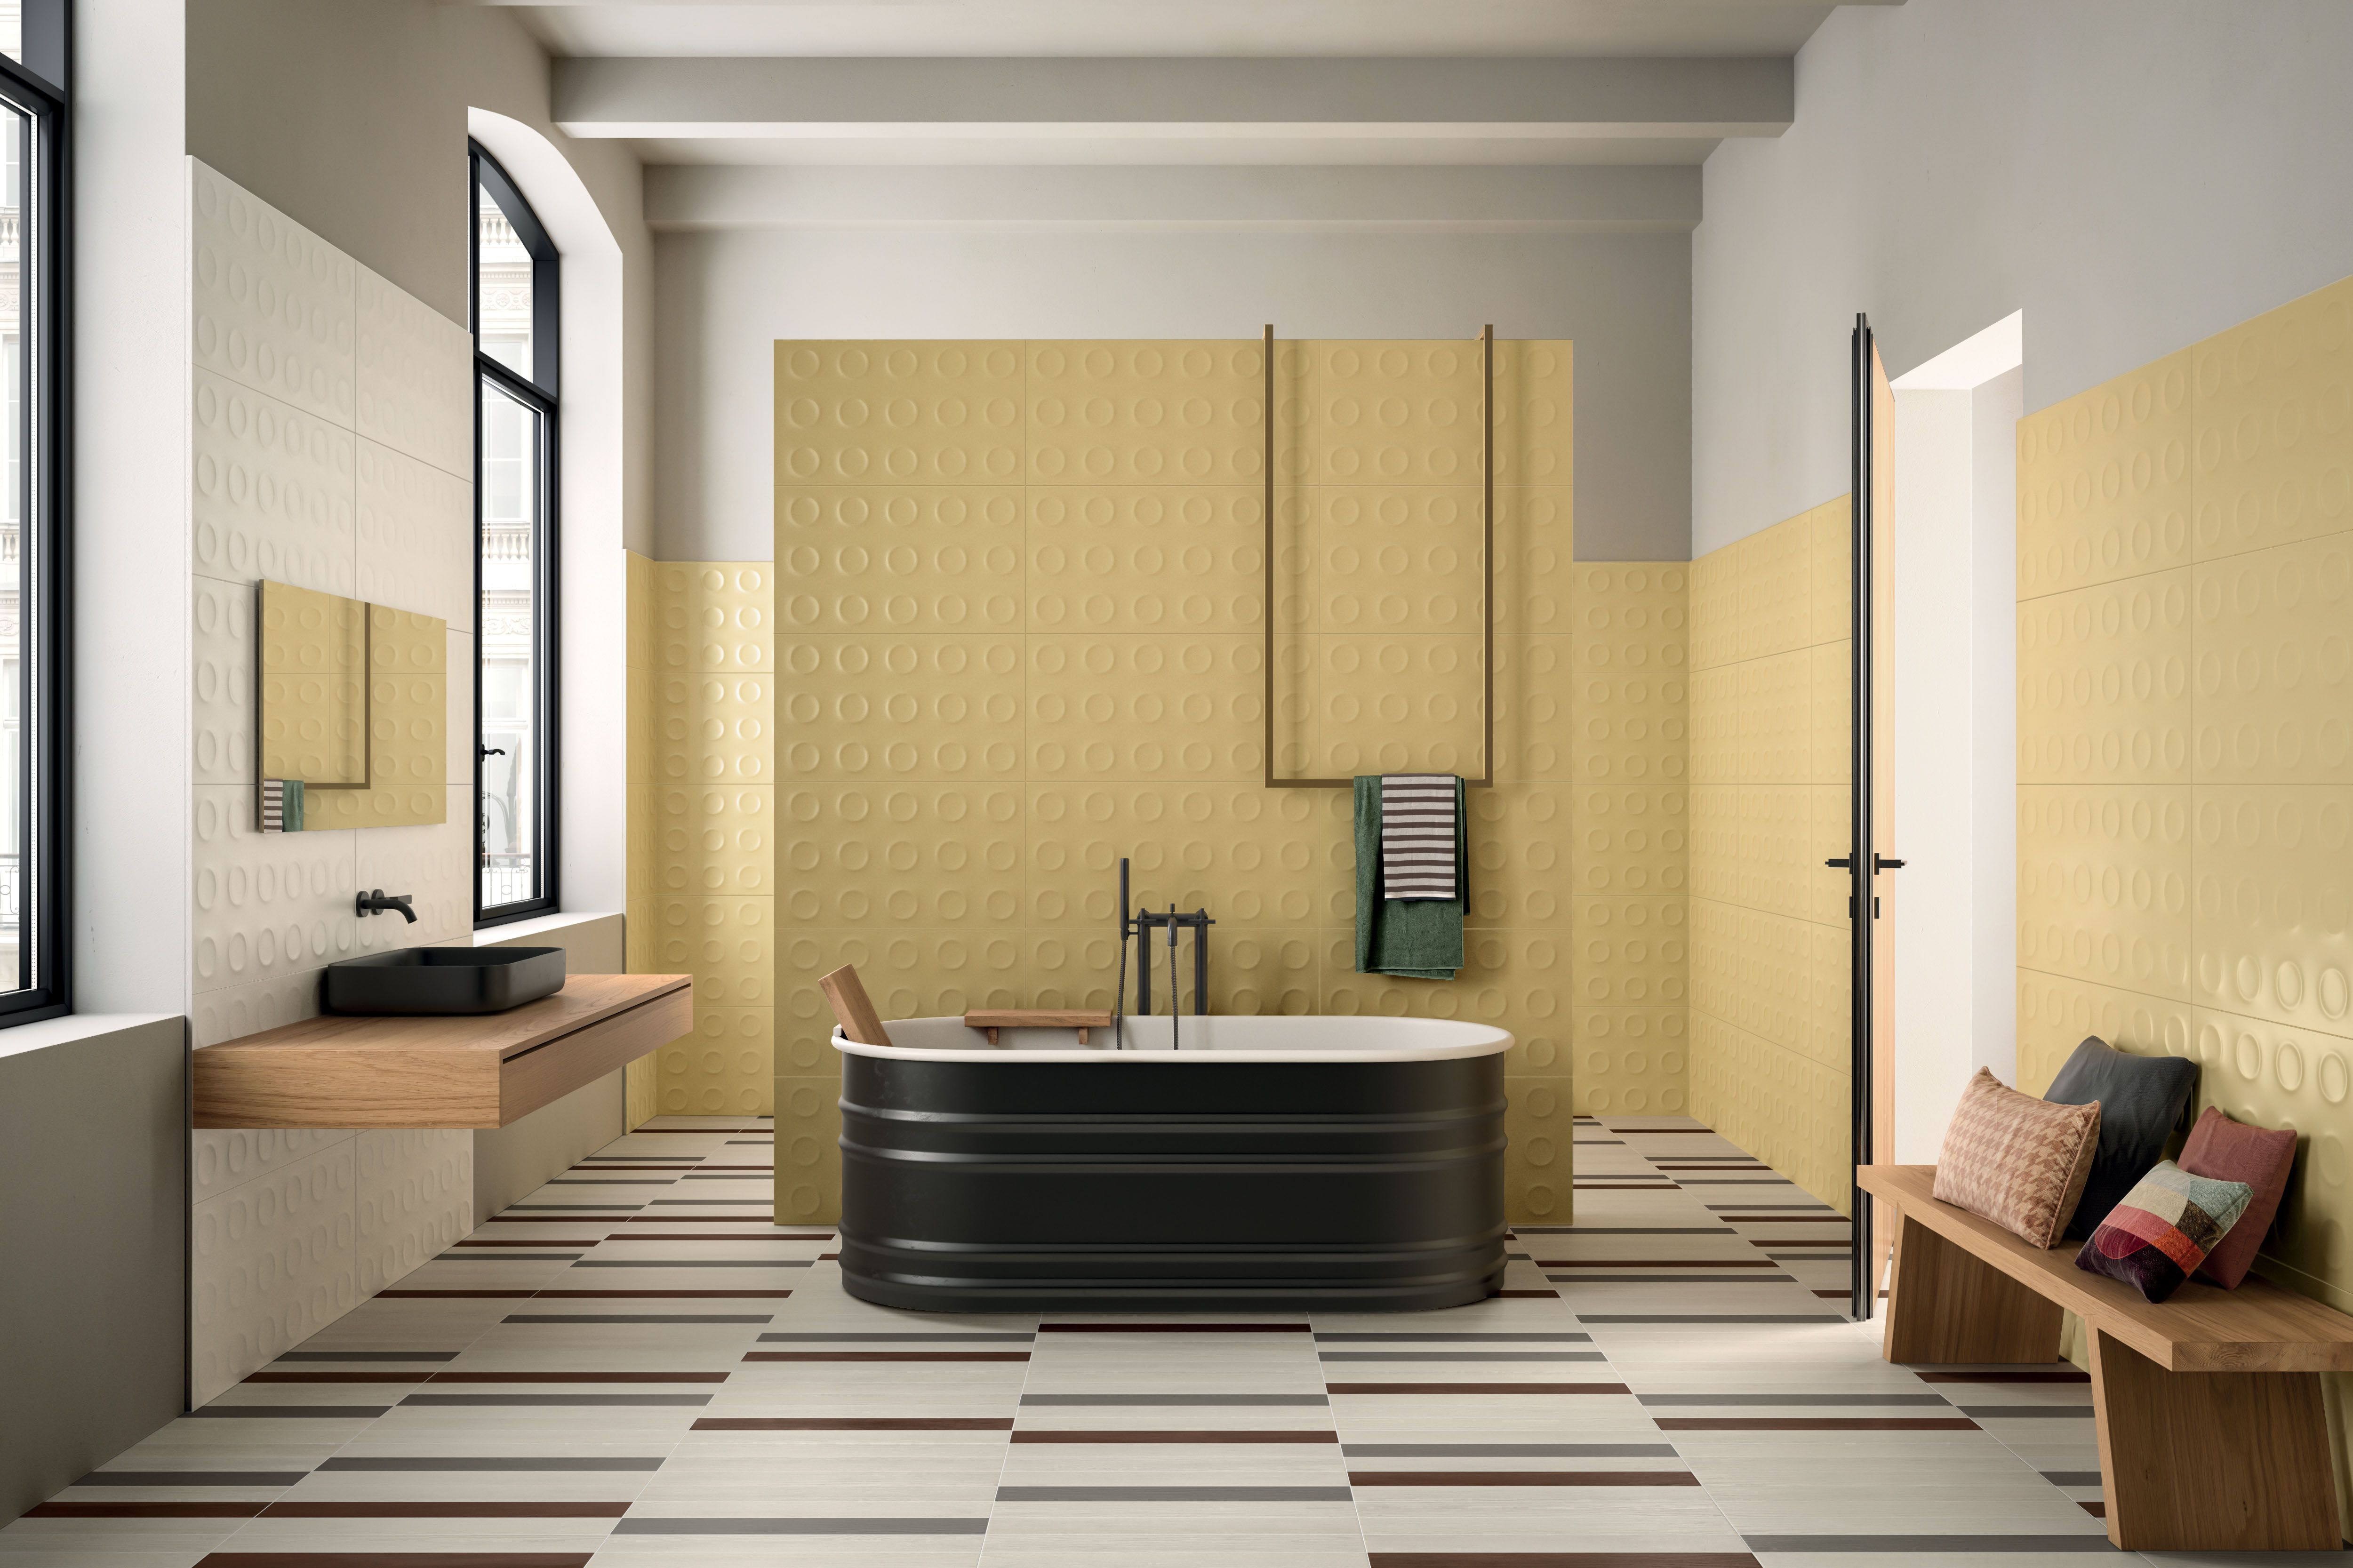 #Tiles #Colour #Manchester #Porcelain #Bold #3D